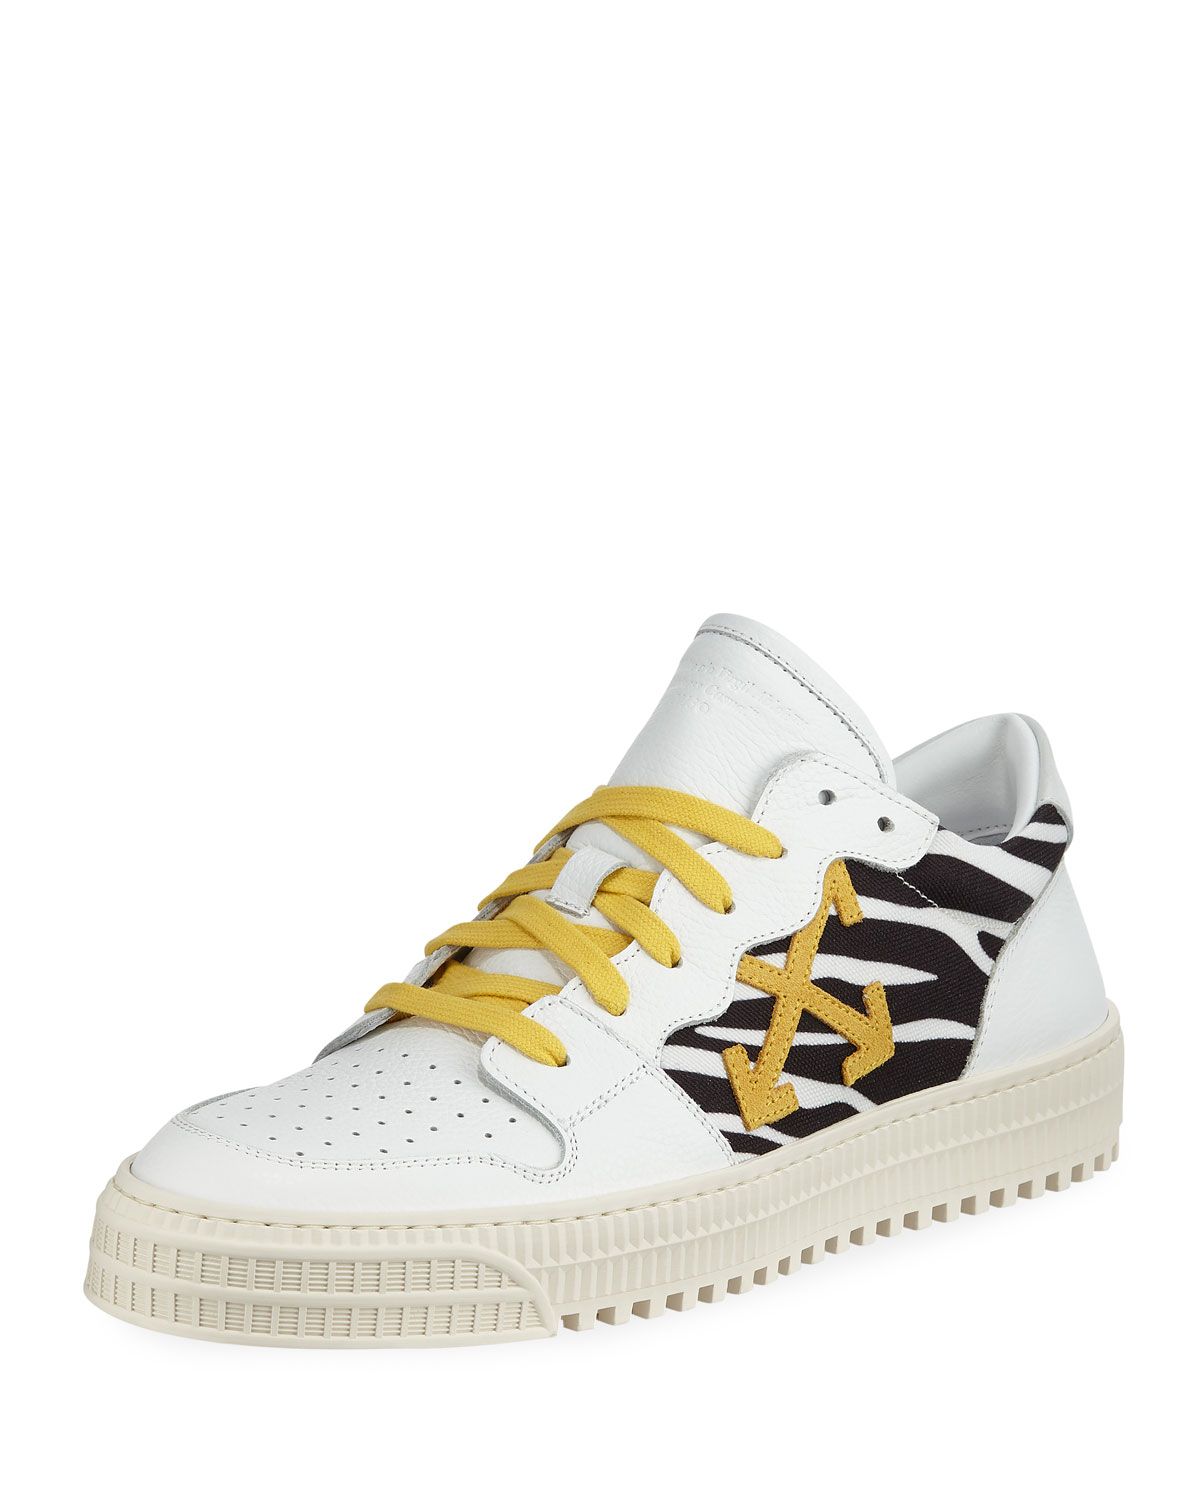 Men's 3.0 Polo Mid-Top Zebra-Print Leather Sneakers